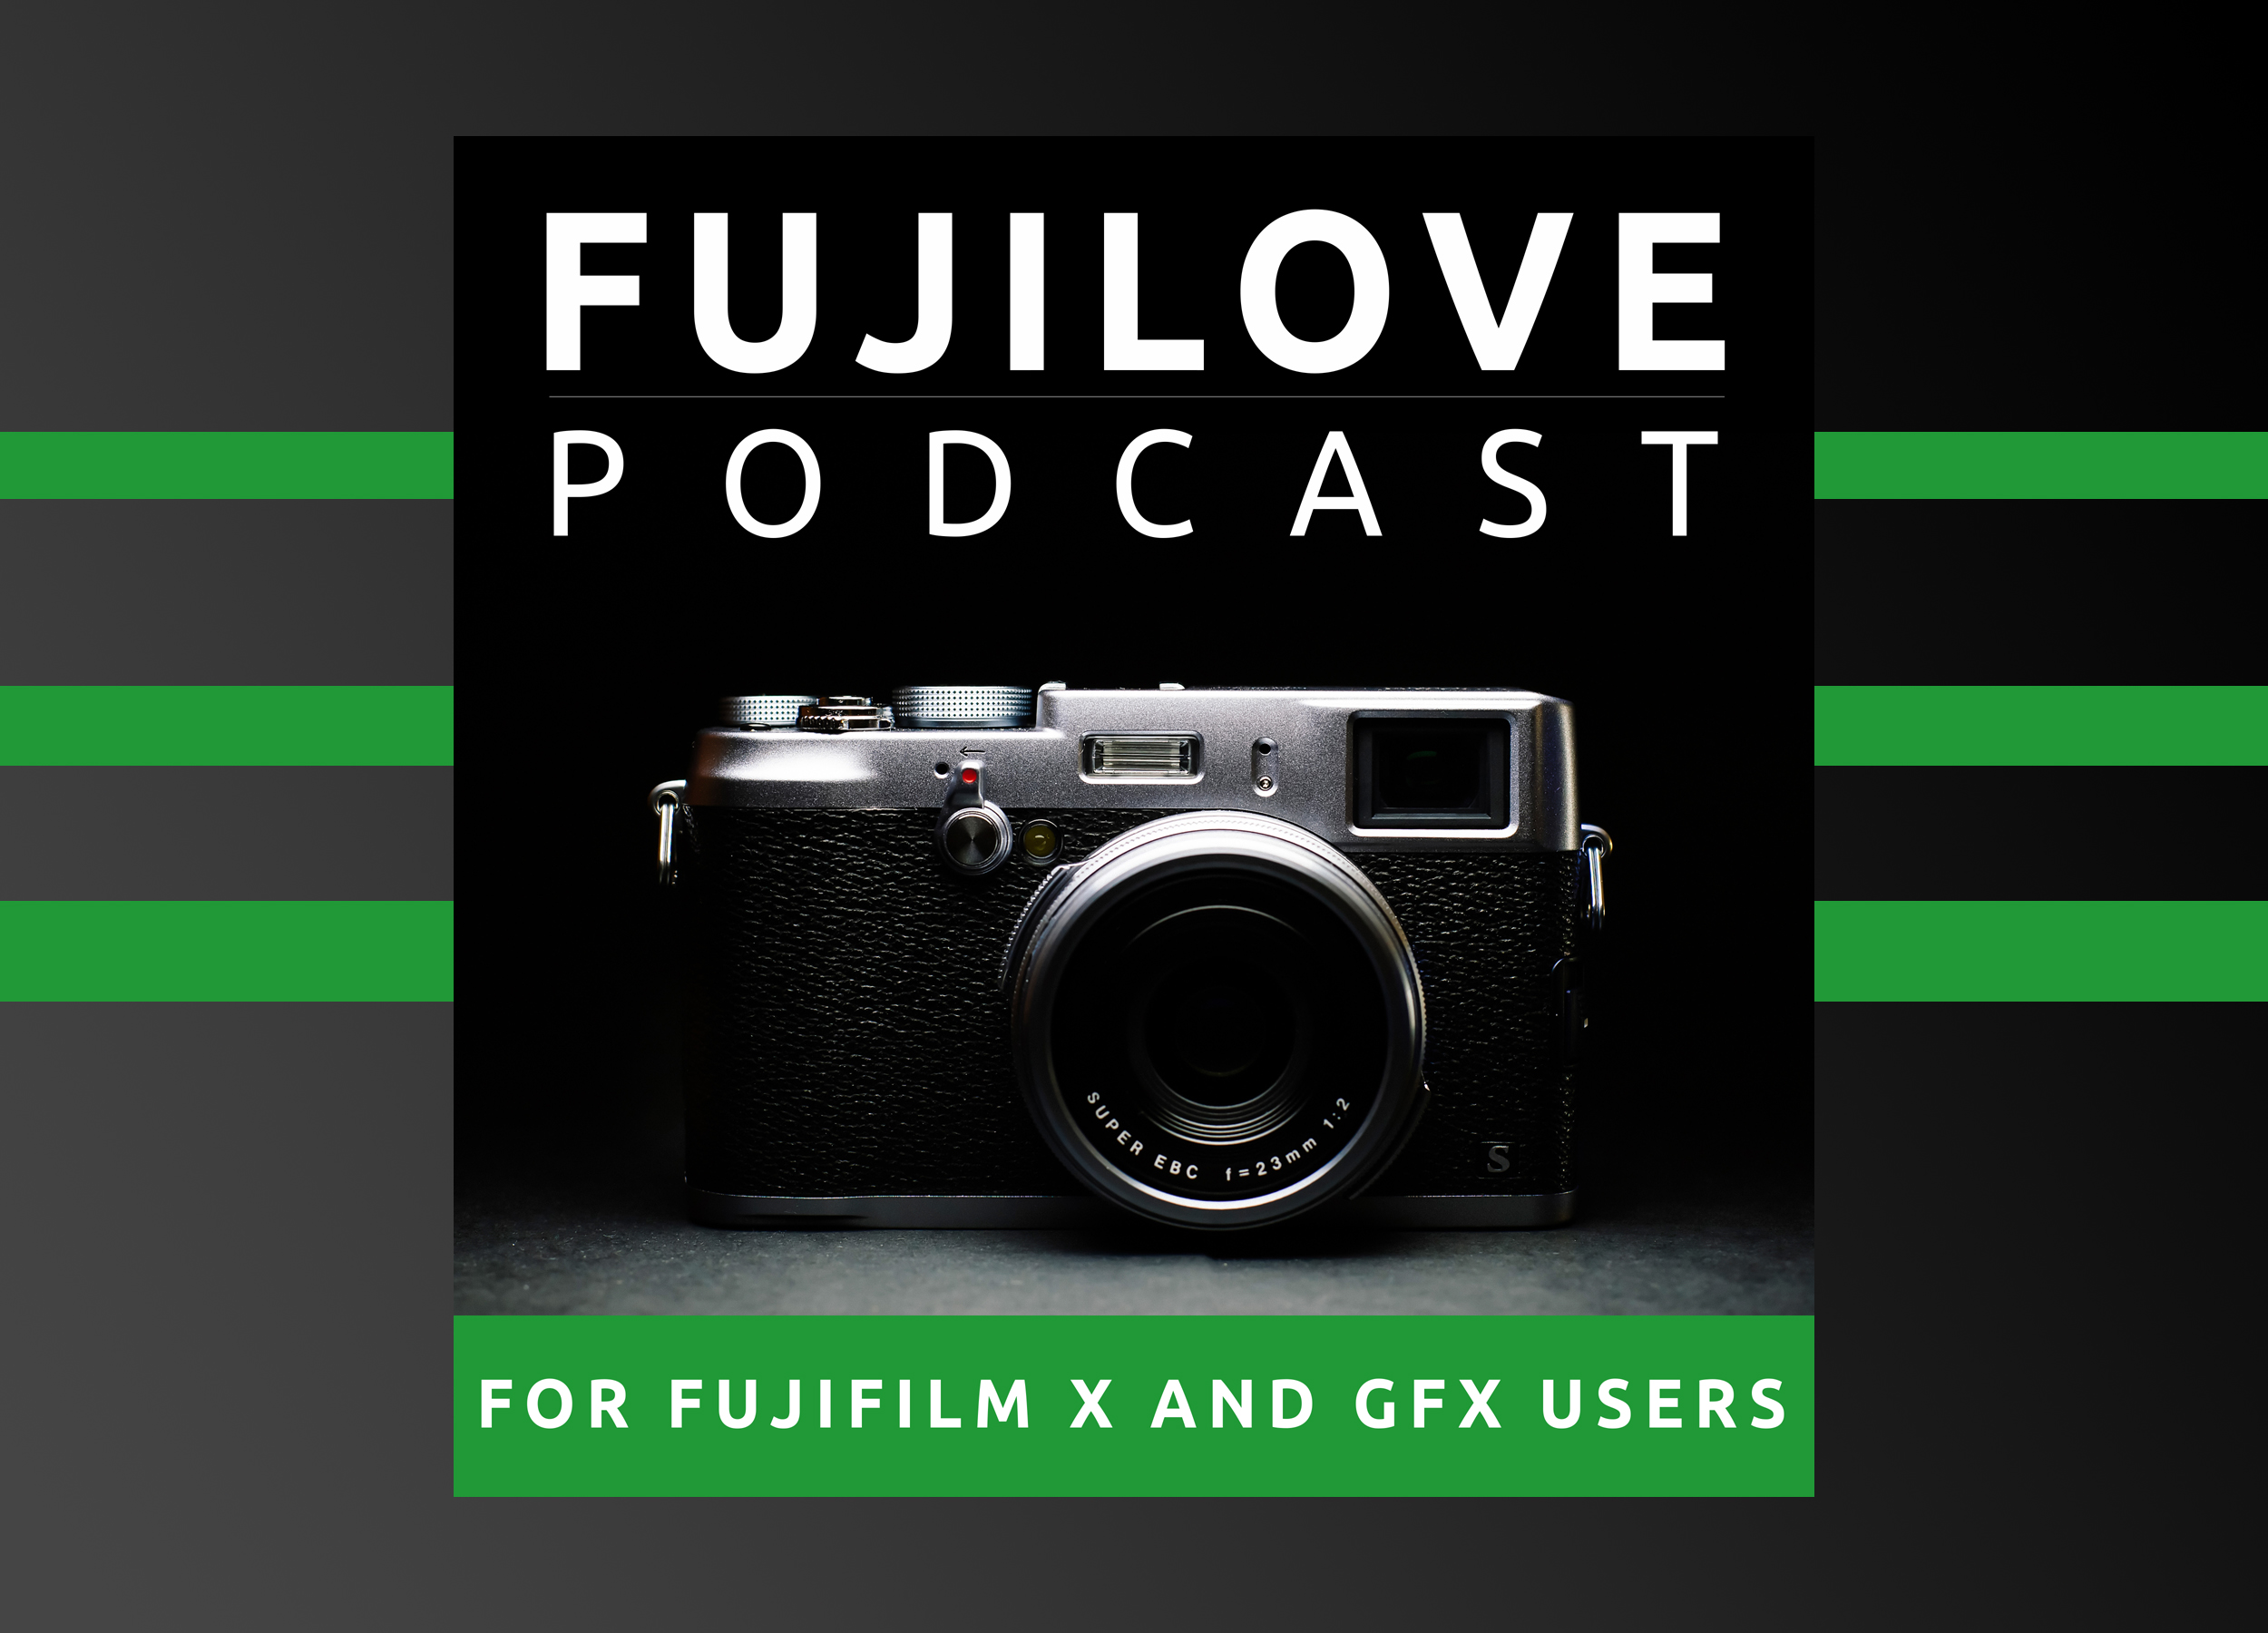 FujiLove Podcast - Welcome Marc Sadowski!